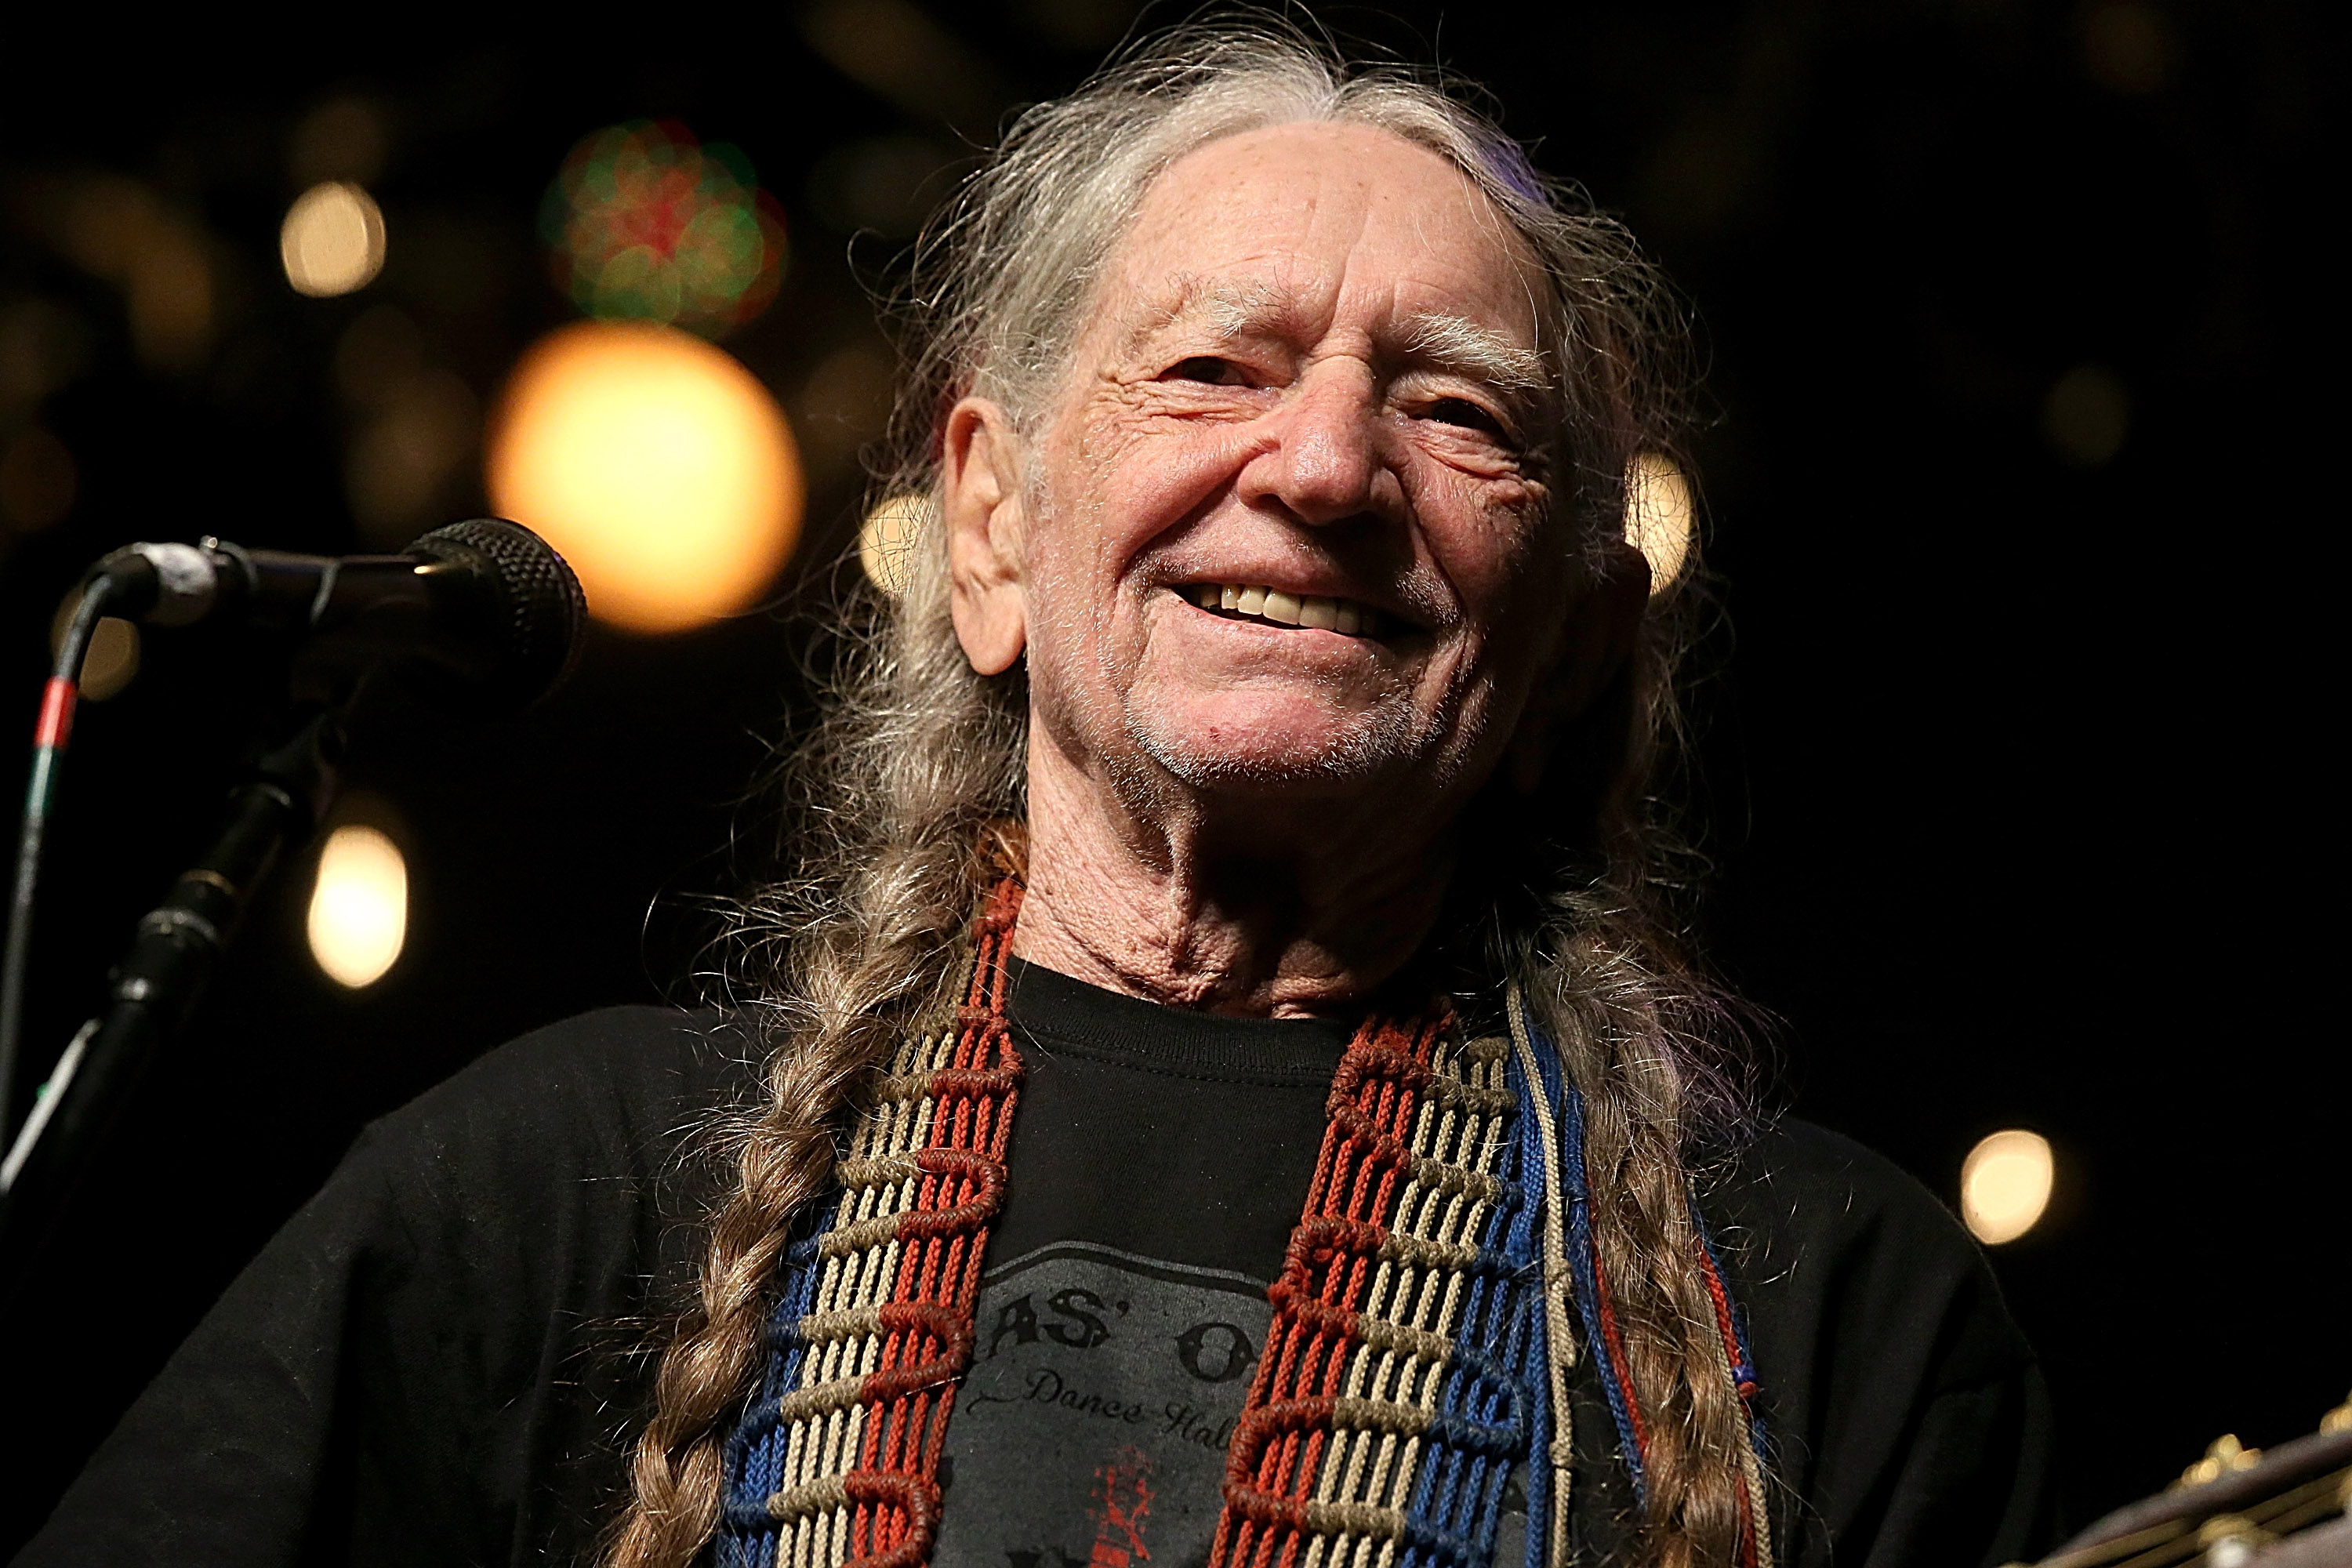 Willie Nelson performs in concert during the Heartbreaker Banquet on March 19, 2015 in Luck, Texas